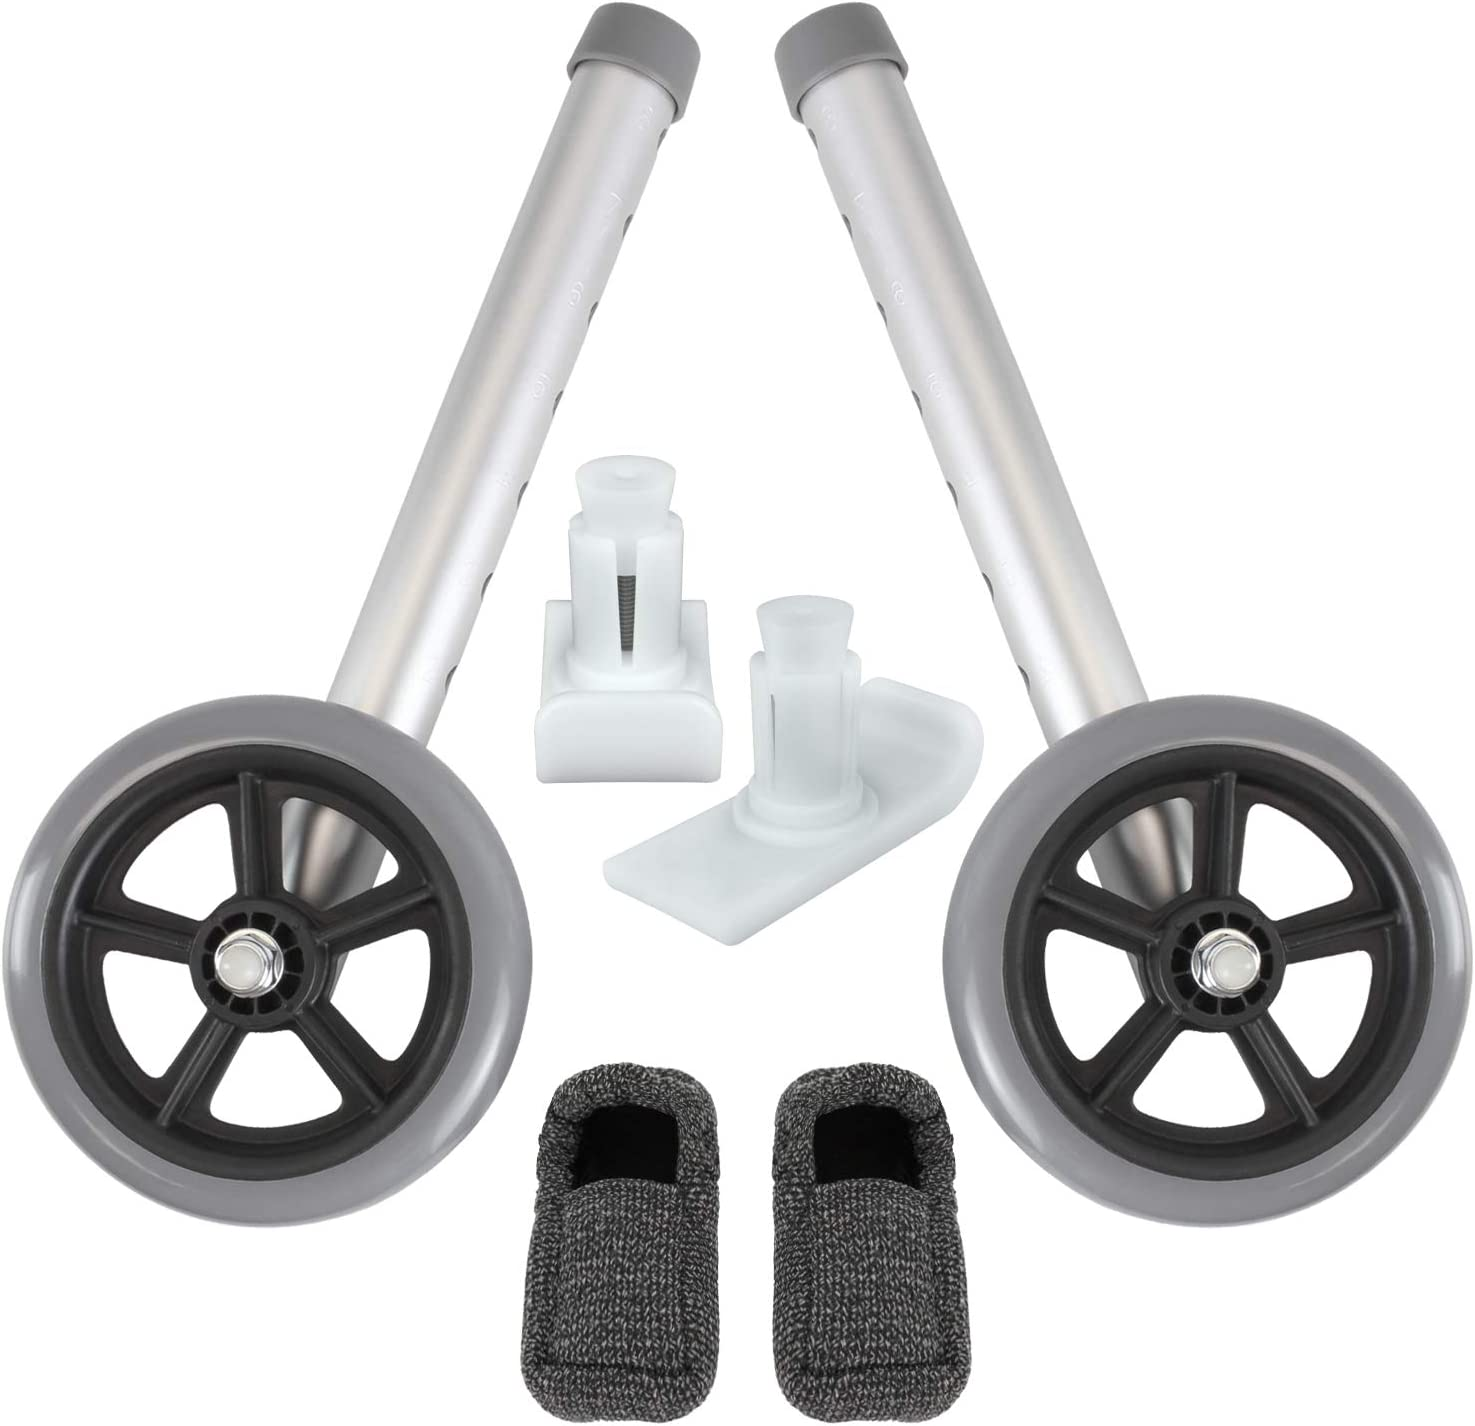 Vive Walker Wheels and Ski Glides - Replacement Feet - Accessories Parts Set for Folding Medical Walkers - Universal Front, Back Stability Safety Wheel - Includes 2 Glide Tips, Two 5 Inch Rubber Wheel: Health & Personal Care